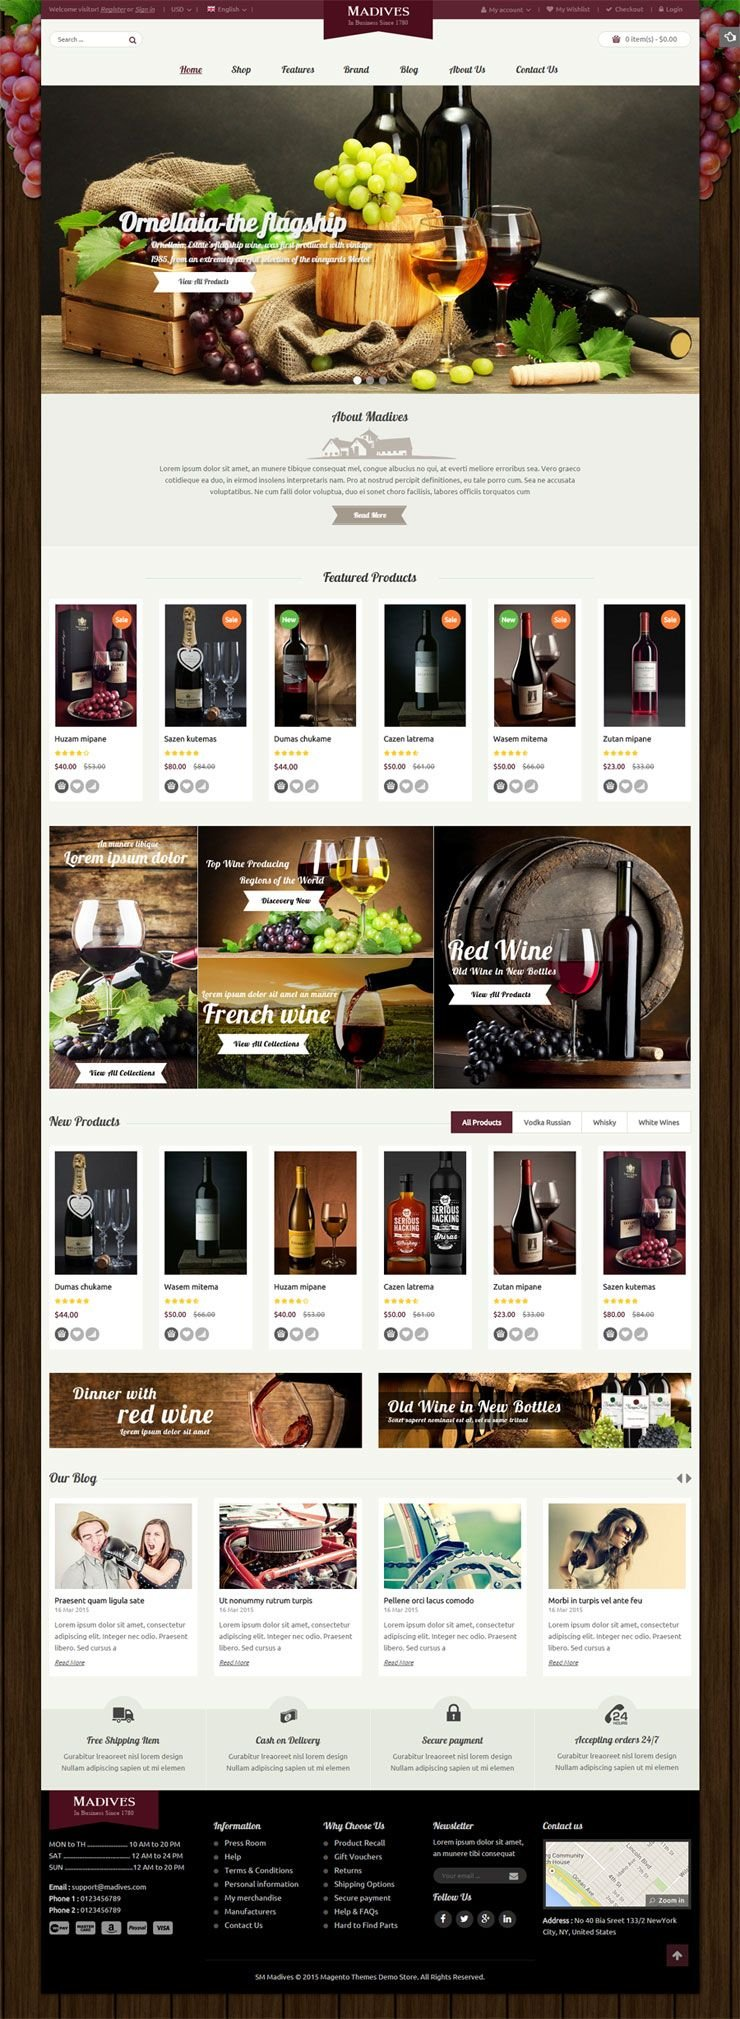 SM Madives - Responsive Multipurpose Magento Theme Screenshot 2